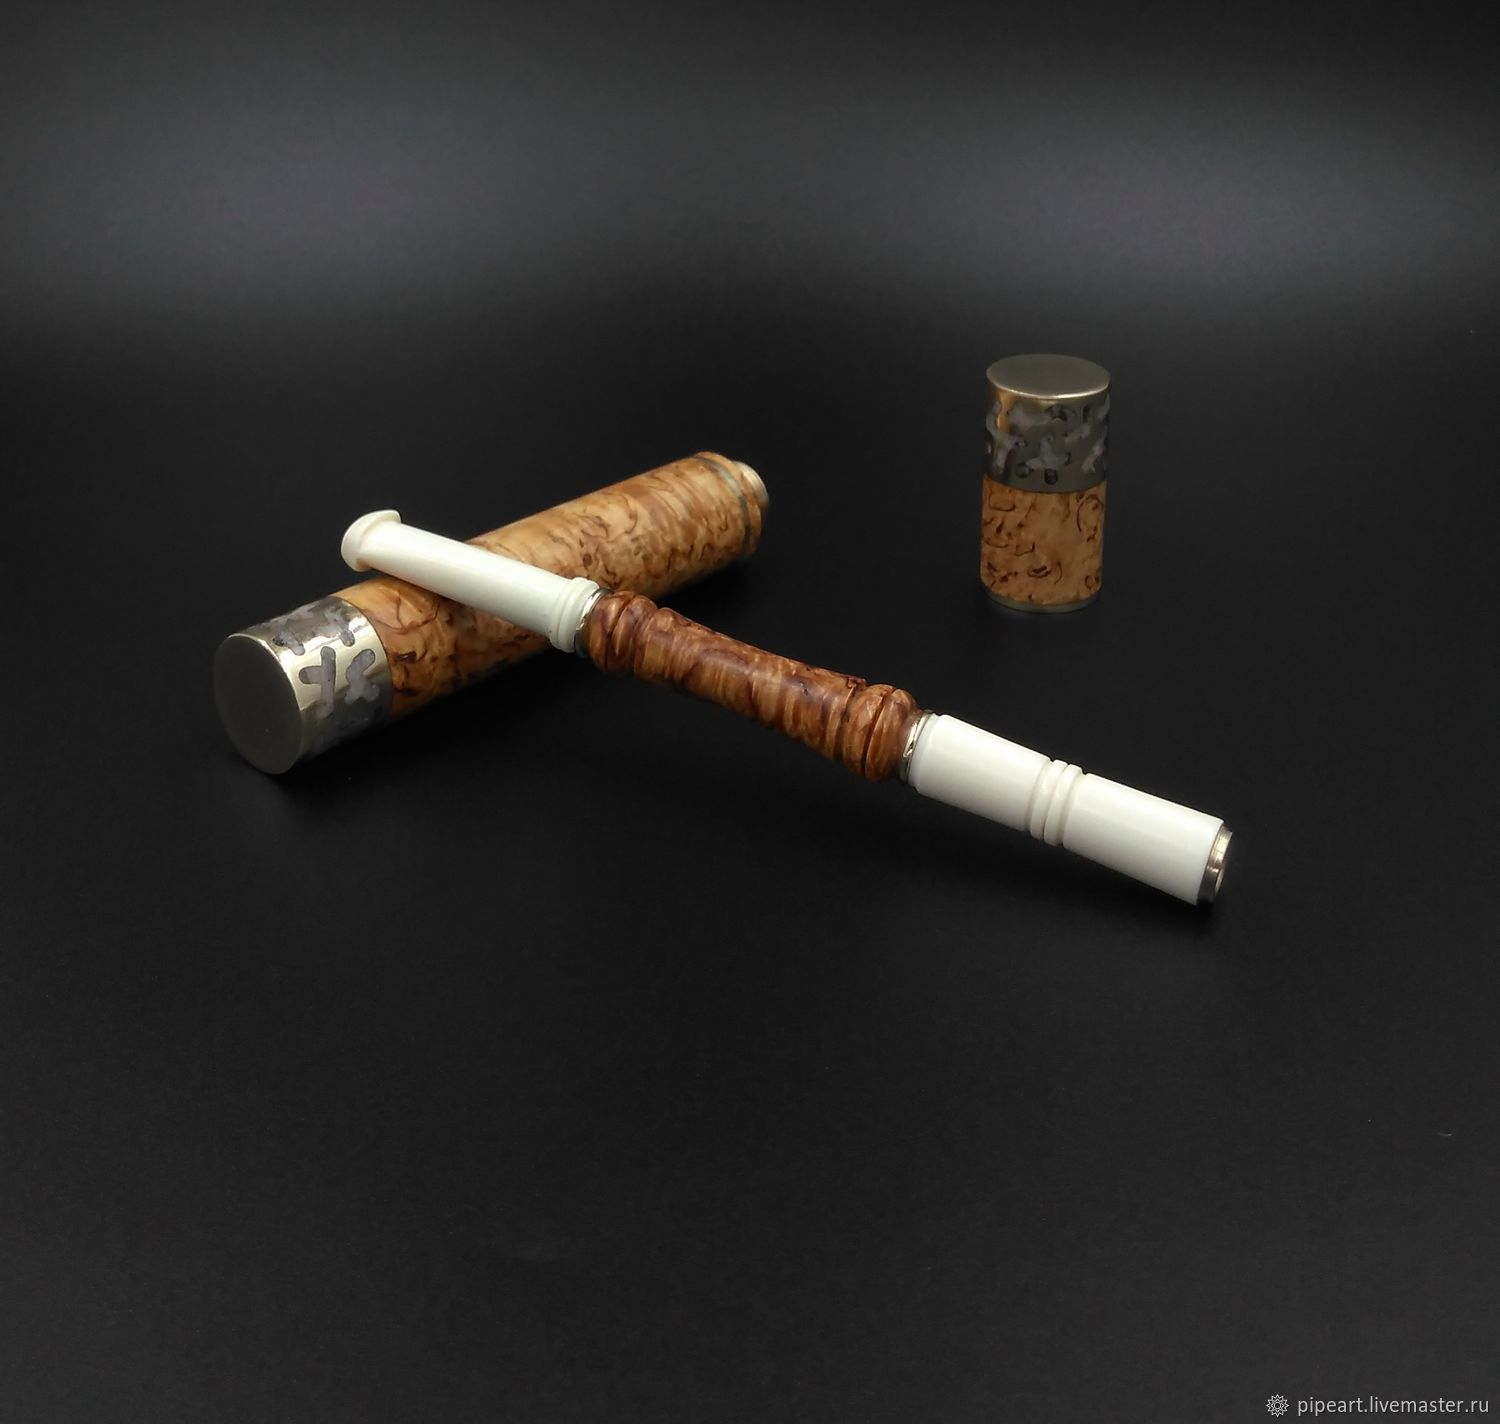 Mouthpiece 4-20 Mammoth, Cigarette holder, Moscow,  Фото №1